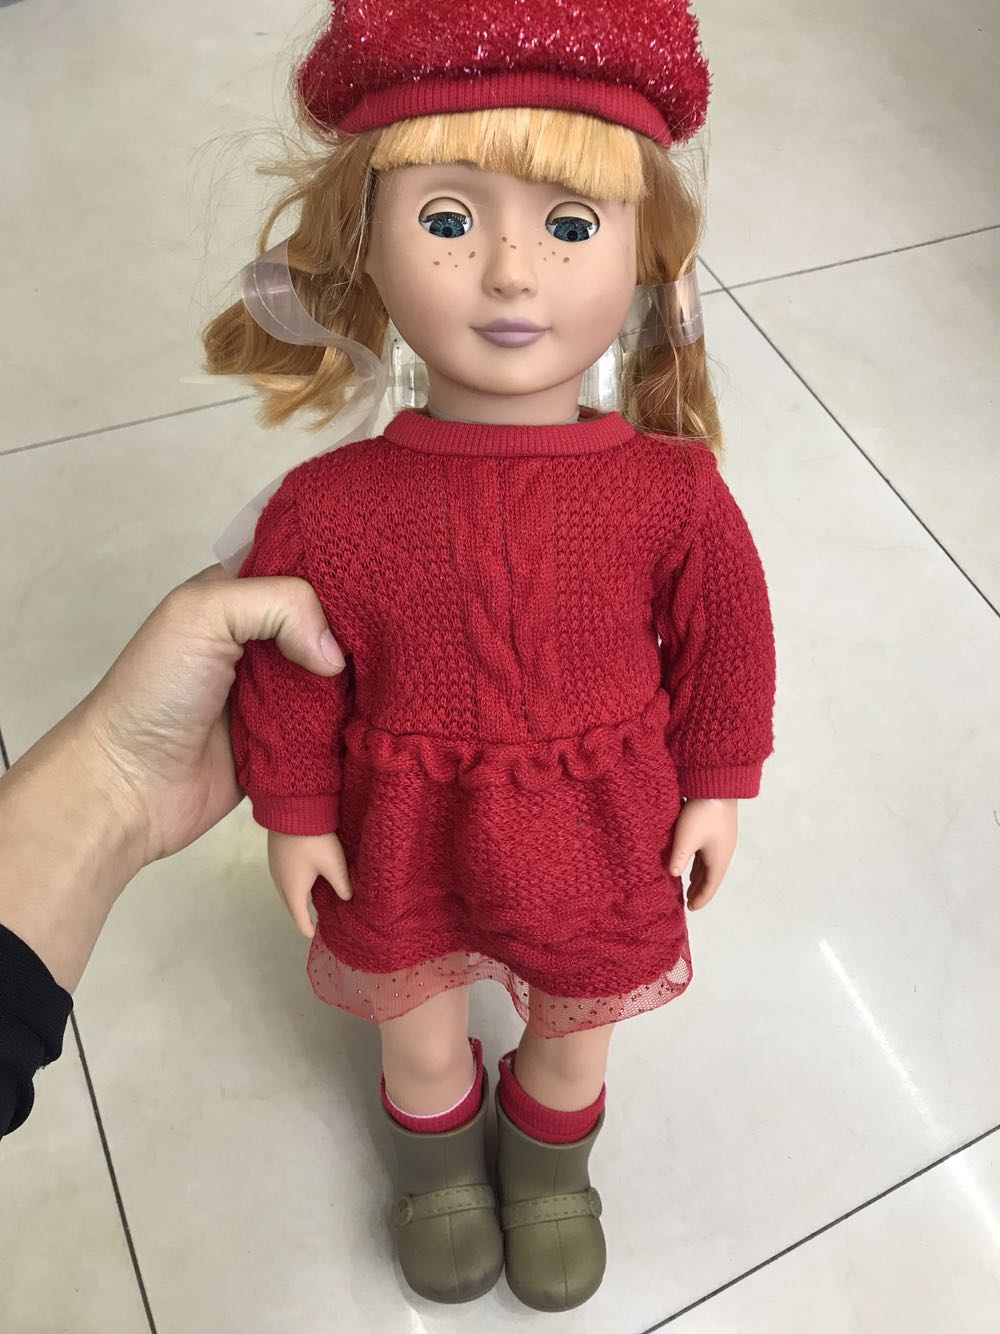 American Doll Alive 18 Inch without box Reborn+Fashion Clothes Suit&Cute Doll Long Curly Hair For Generation Toy